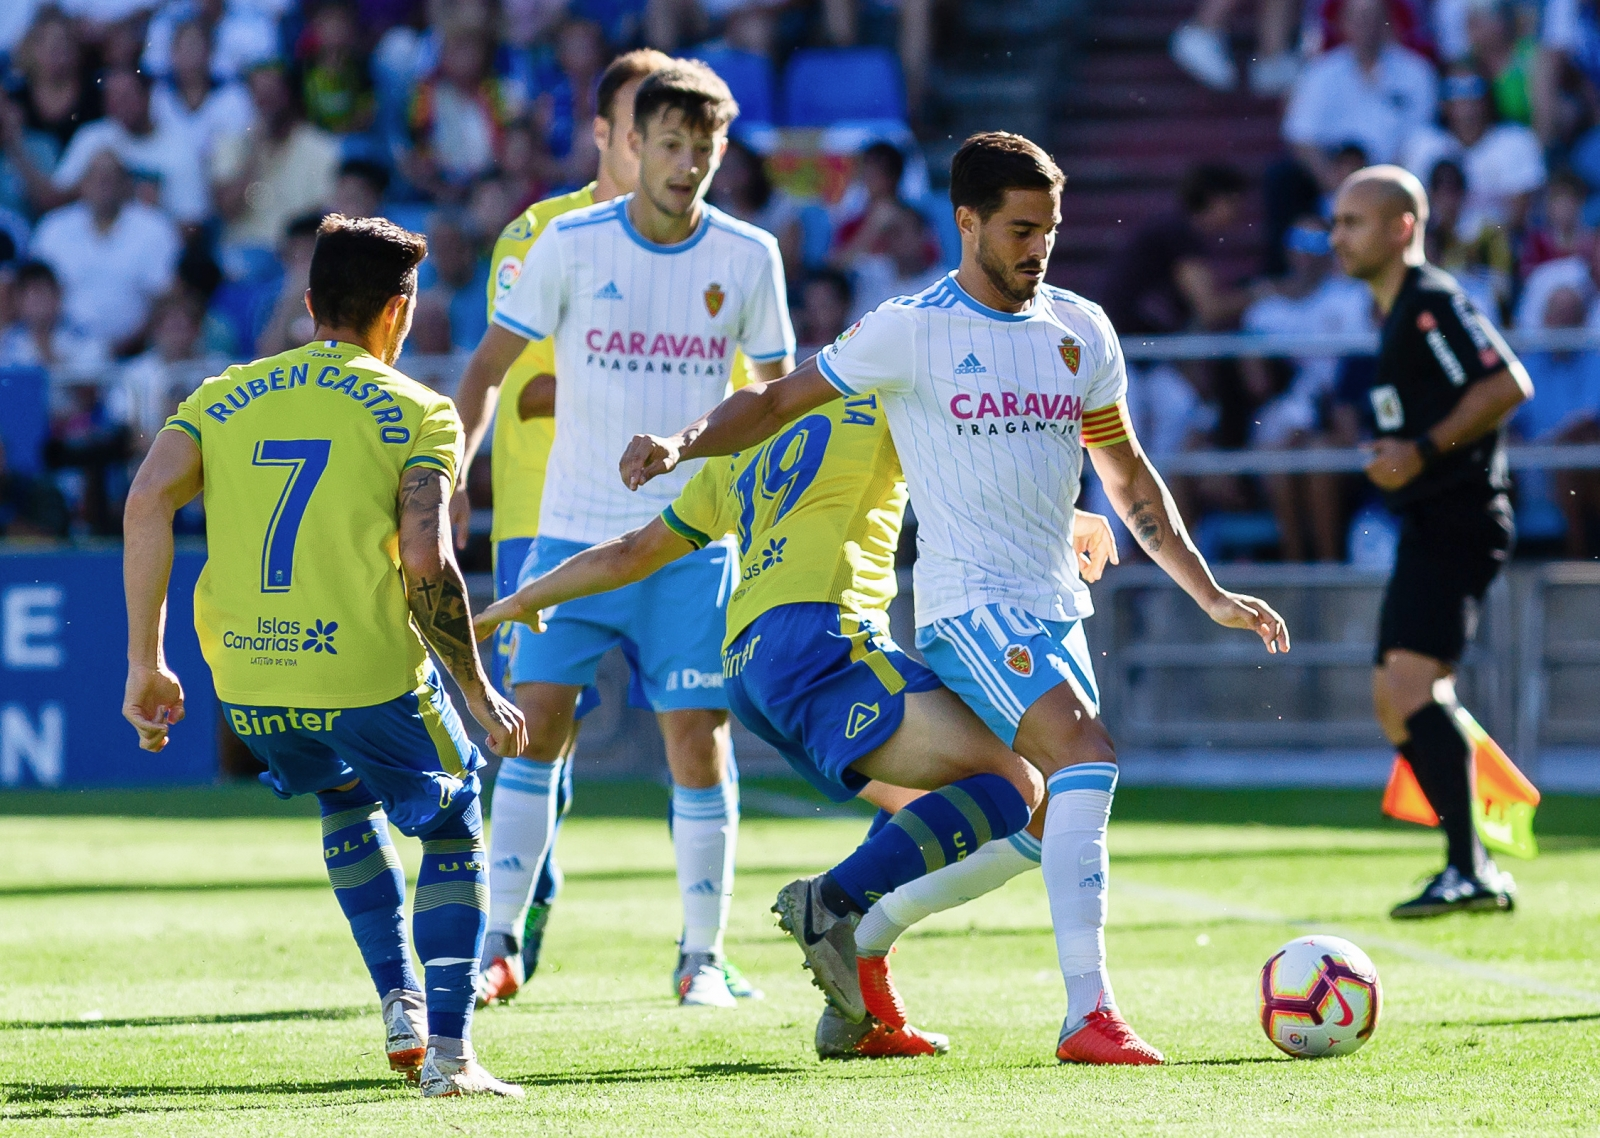 Sofa Score Real Madrid Barcelona The Decline Of Real Zaragoza A Club That Once Lifted Trophies